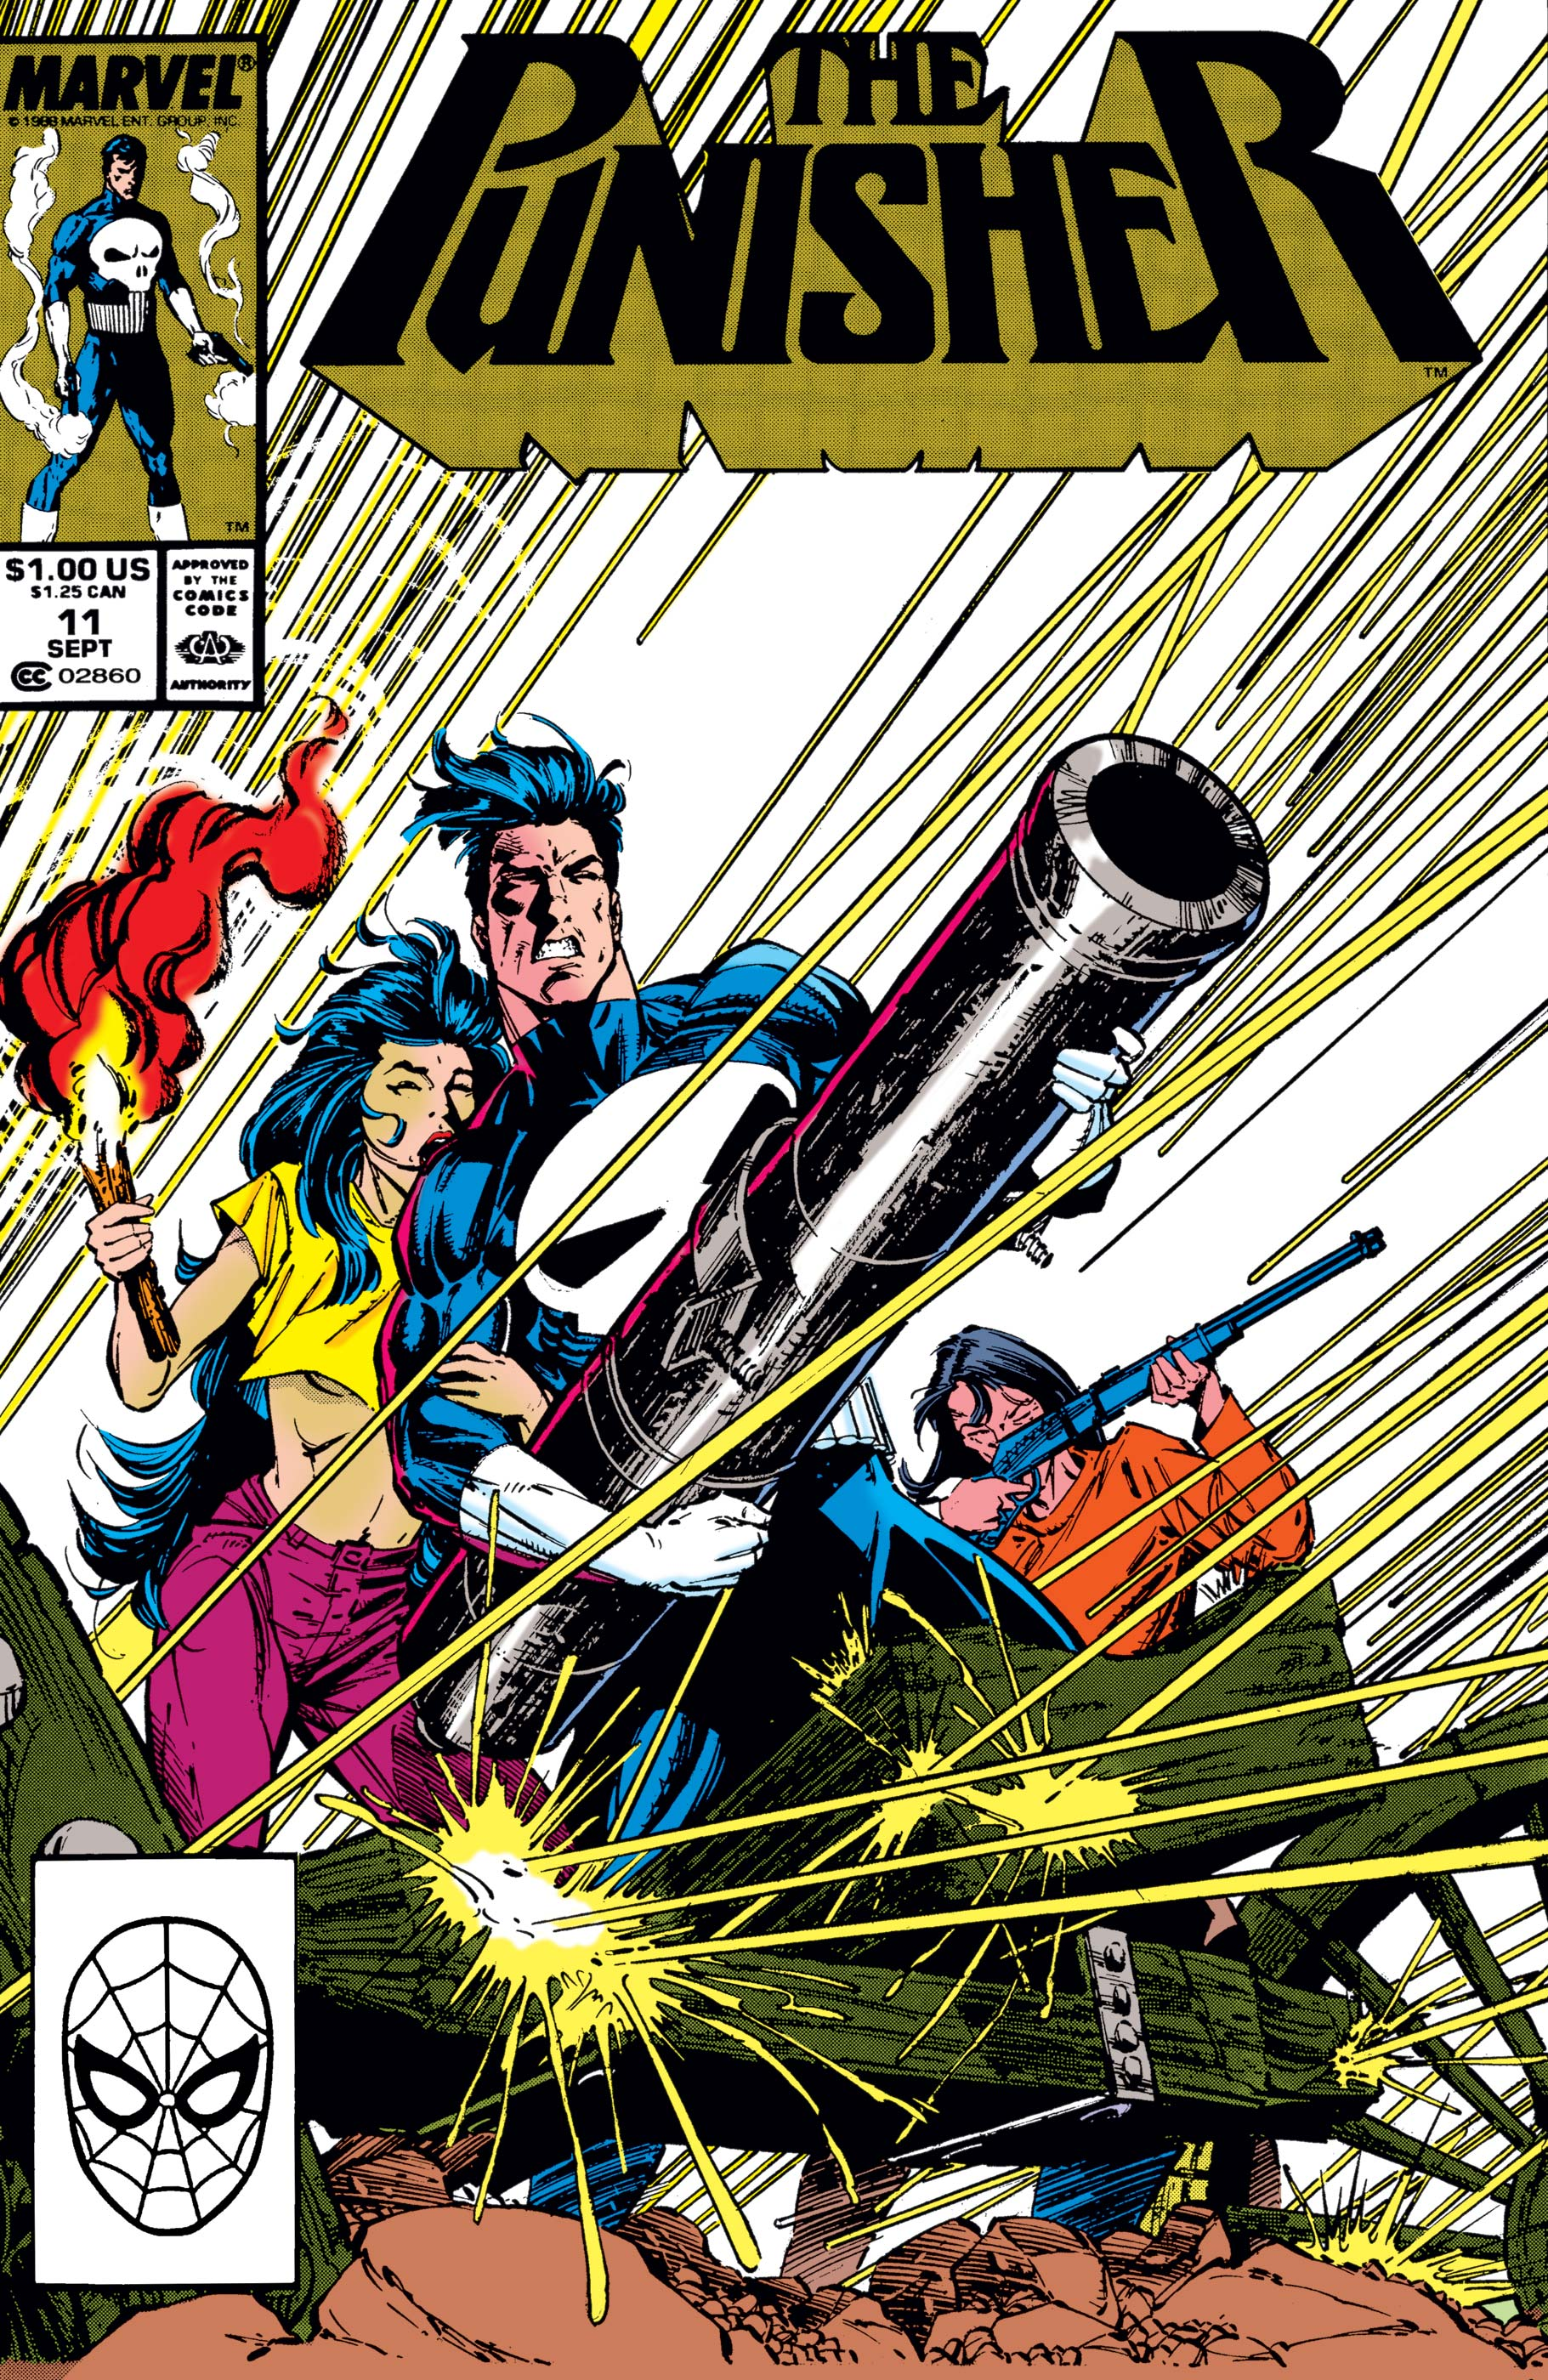 The Punisher (1987) #11